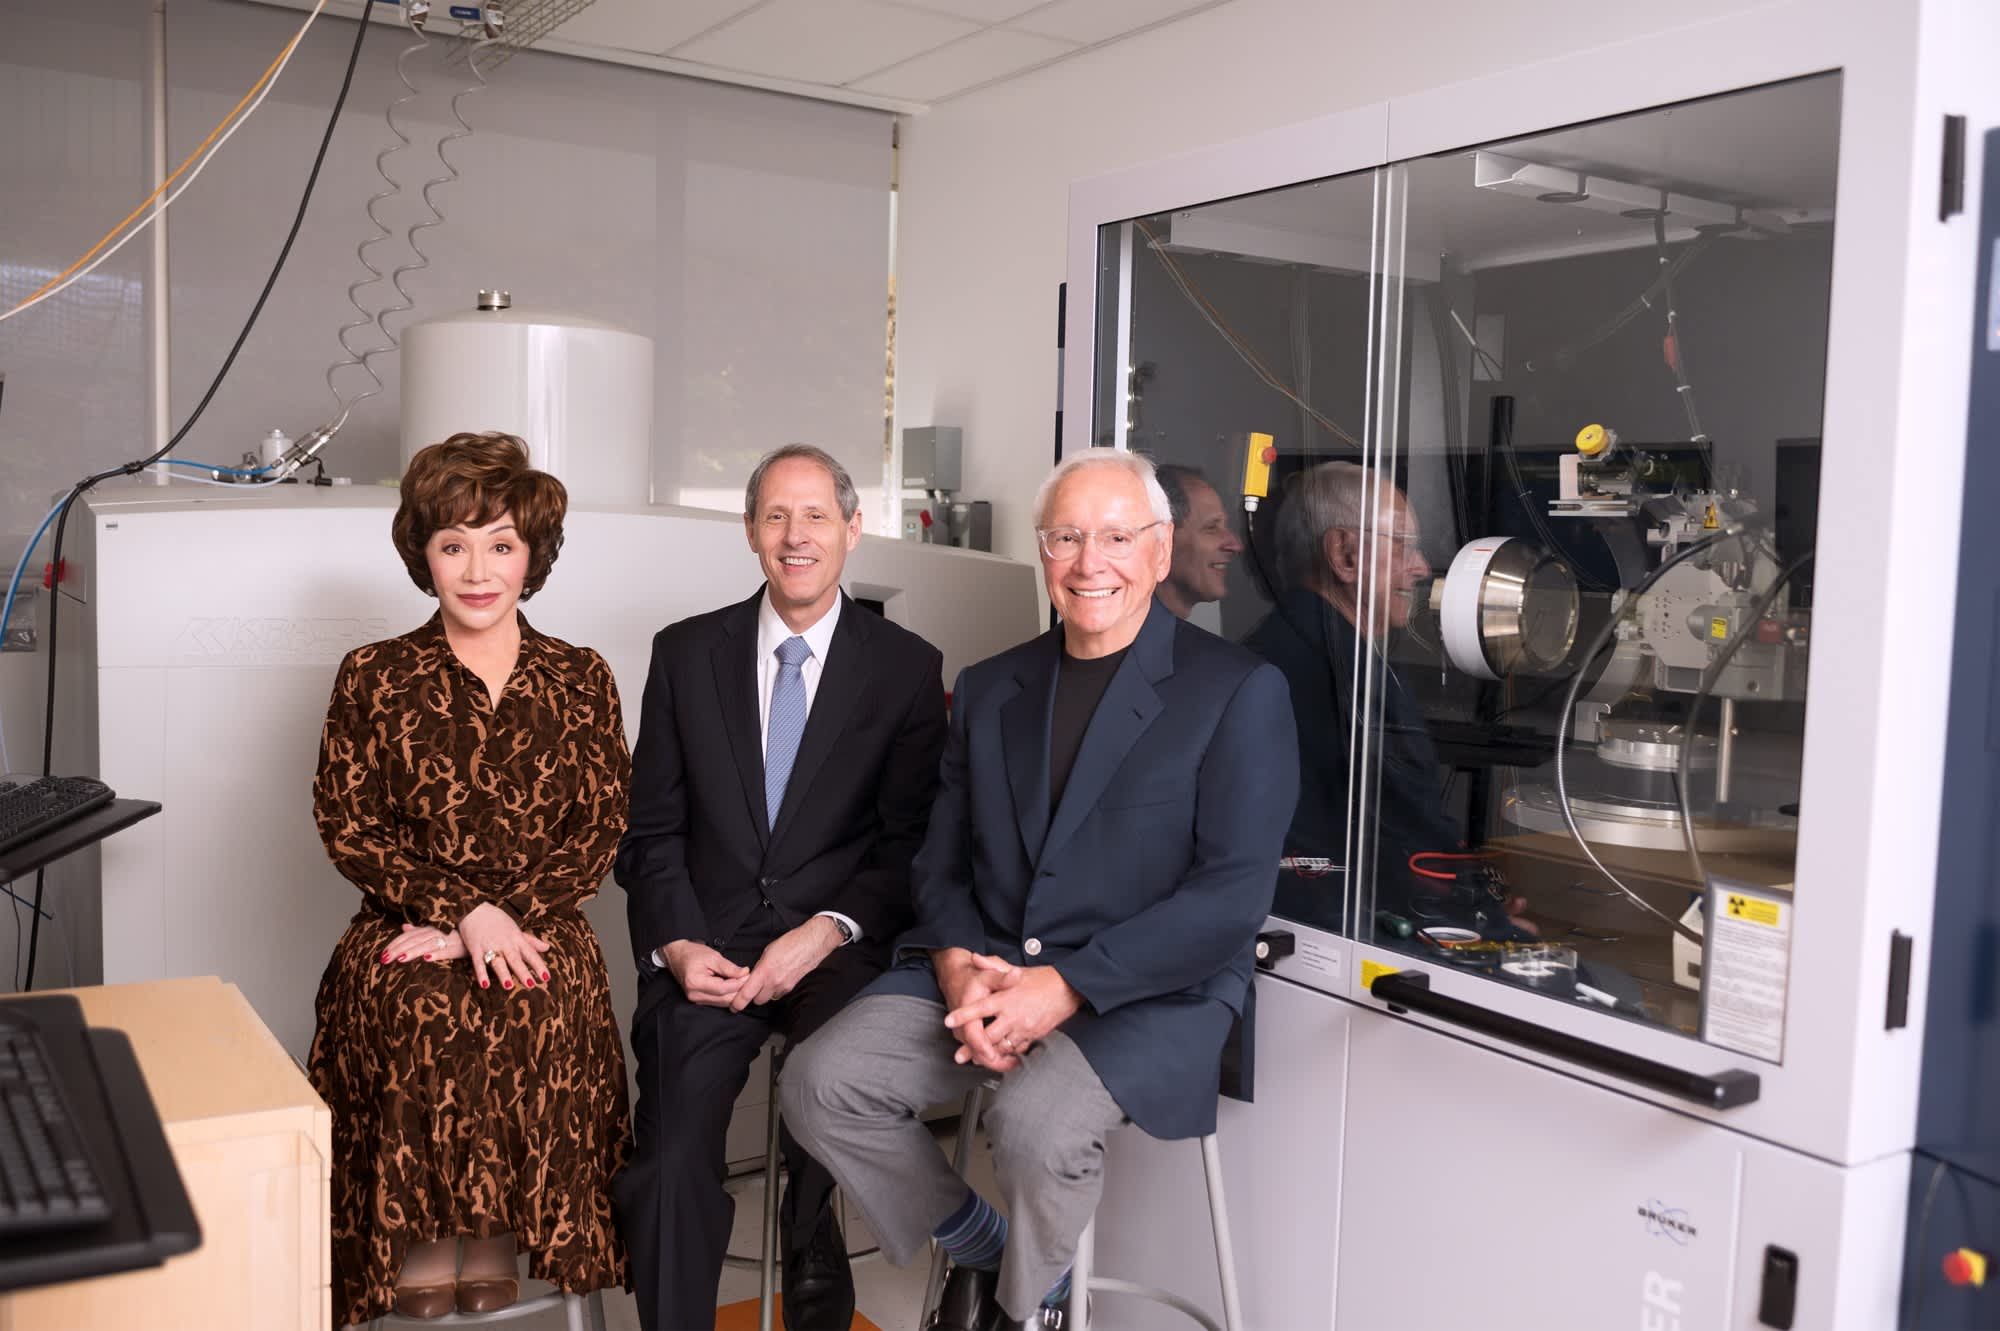 The Wonderful Company co-owners donate $750 million to Caltech for environmental research - CNBC